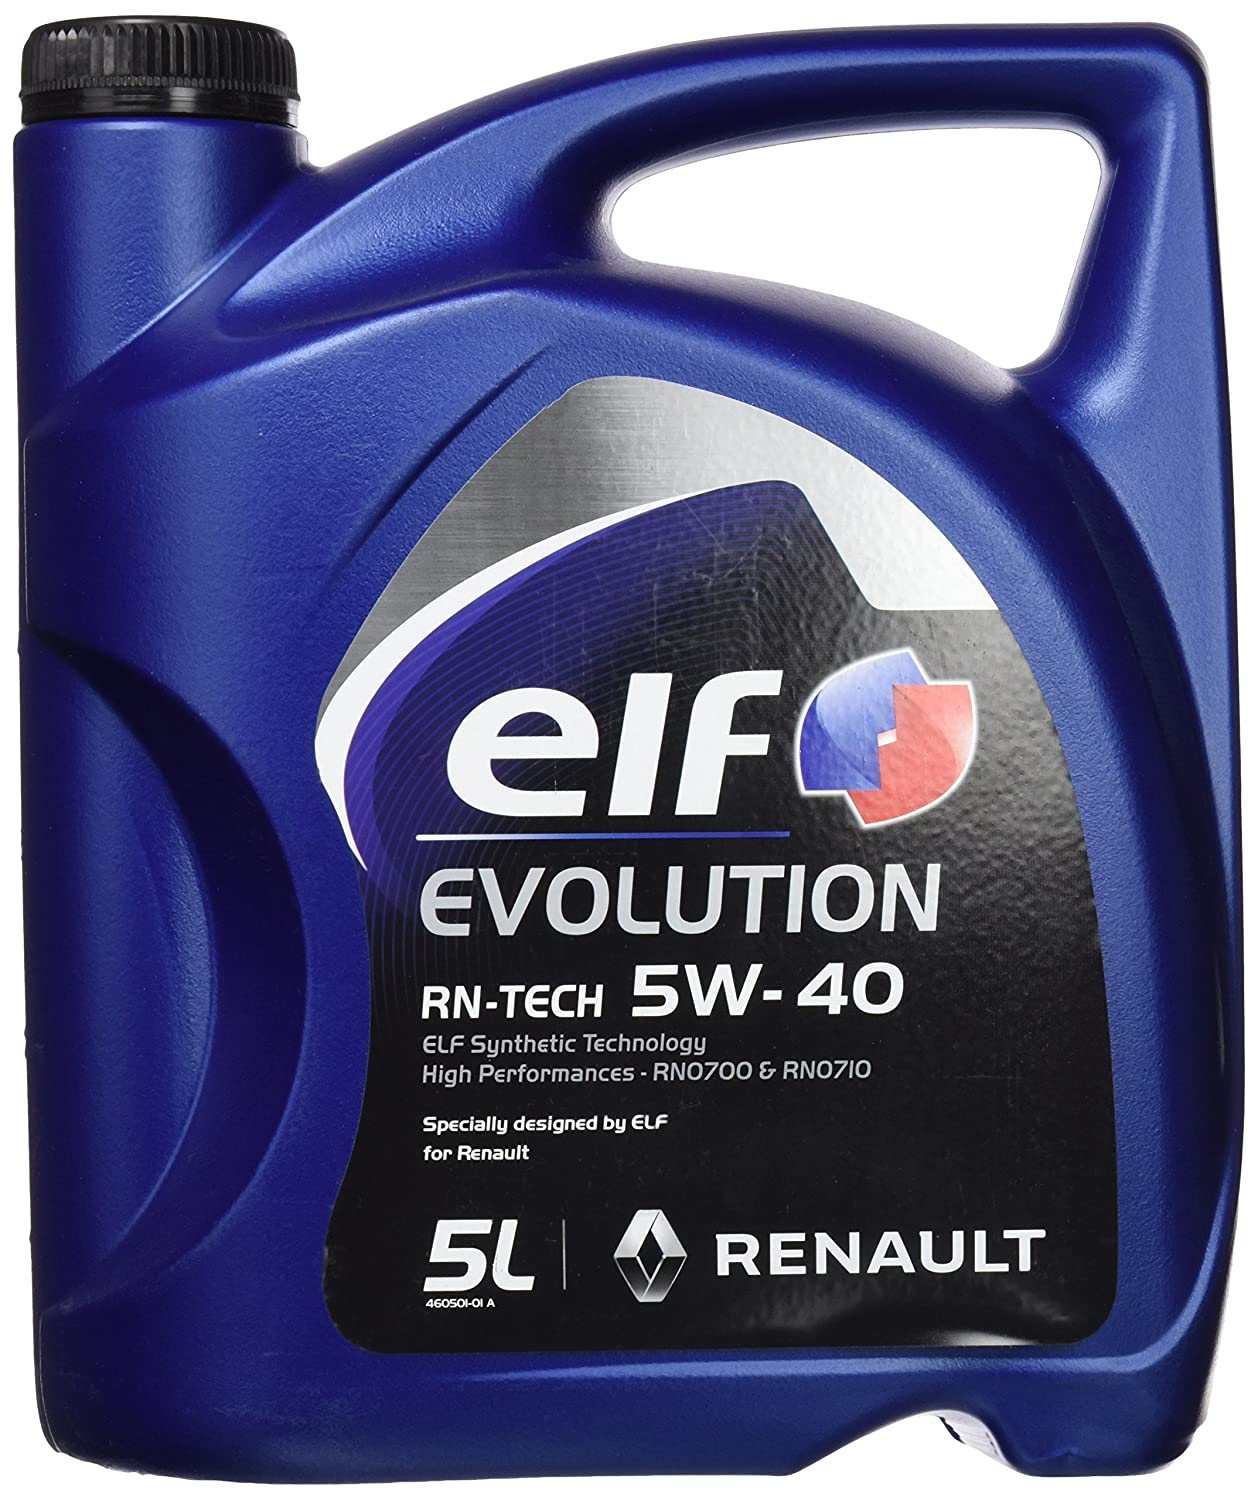 Elf 201030 Aceite Evolution RN-Tech 5W40: Amazon.es: Coche y ...